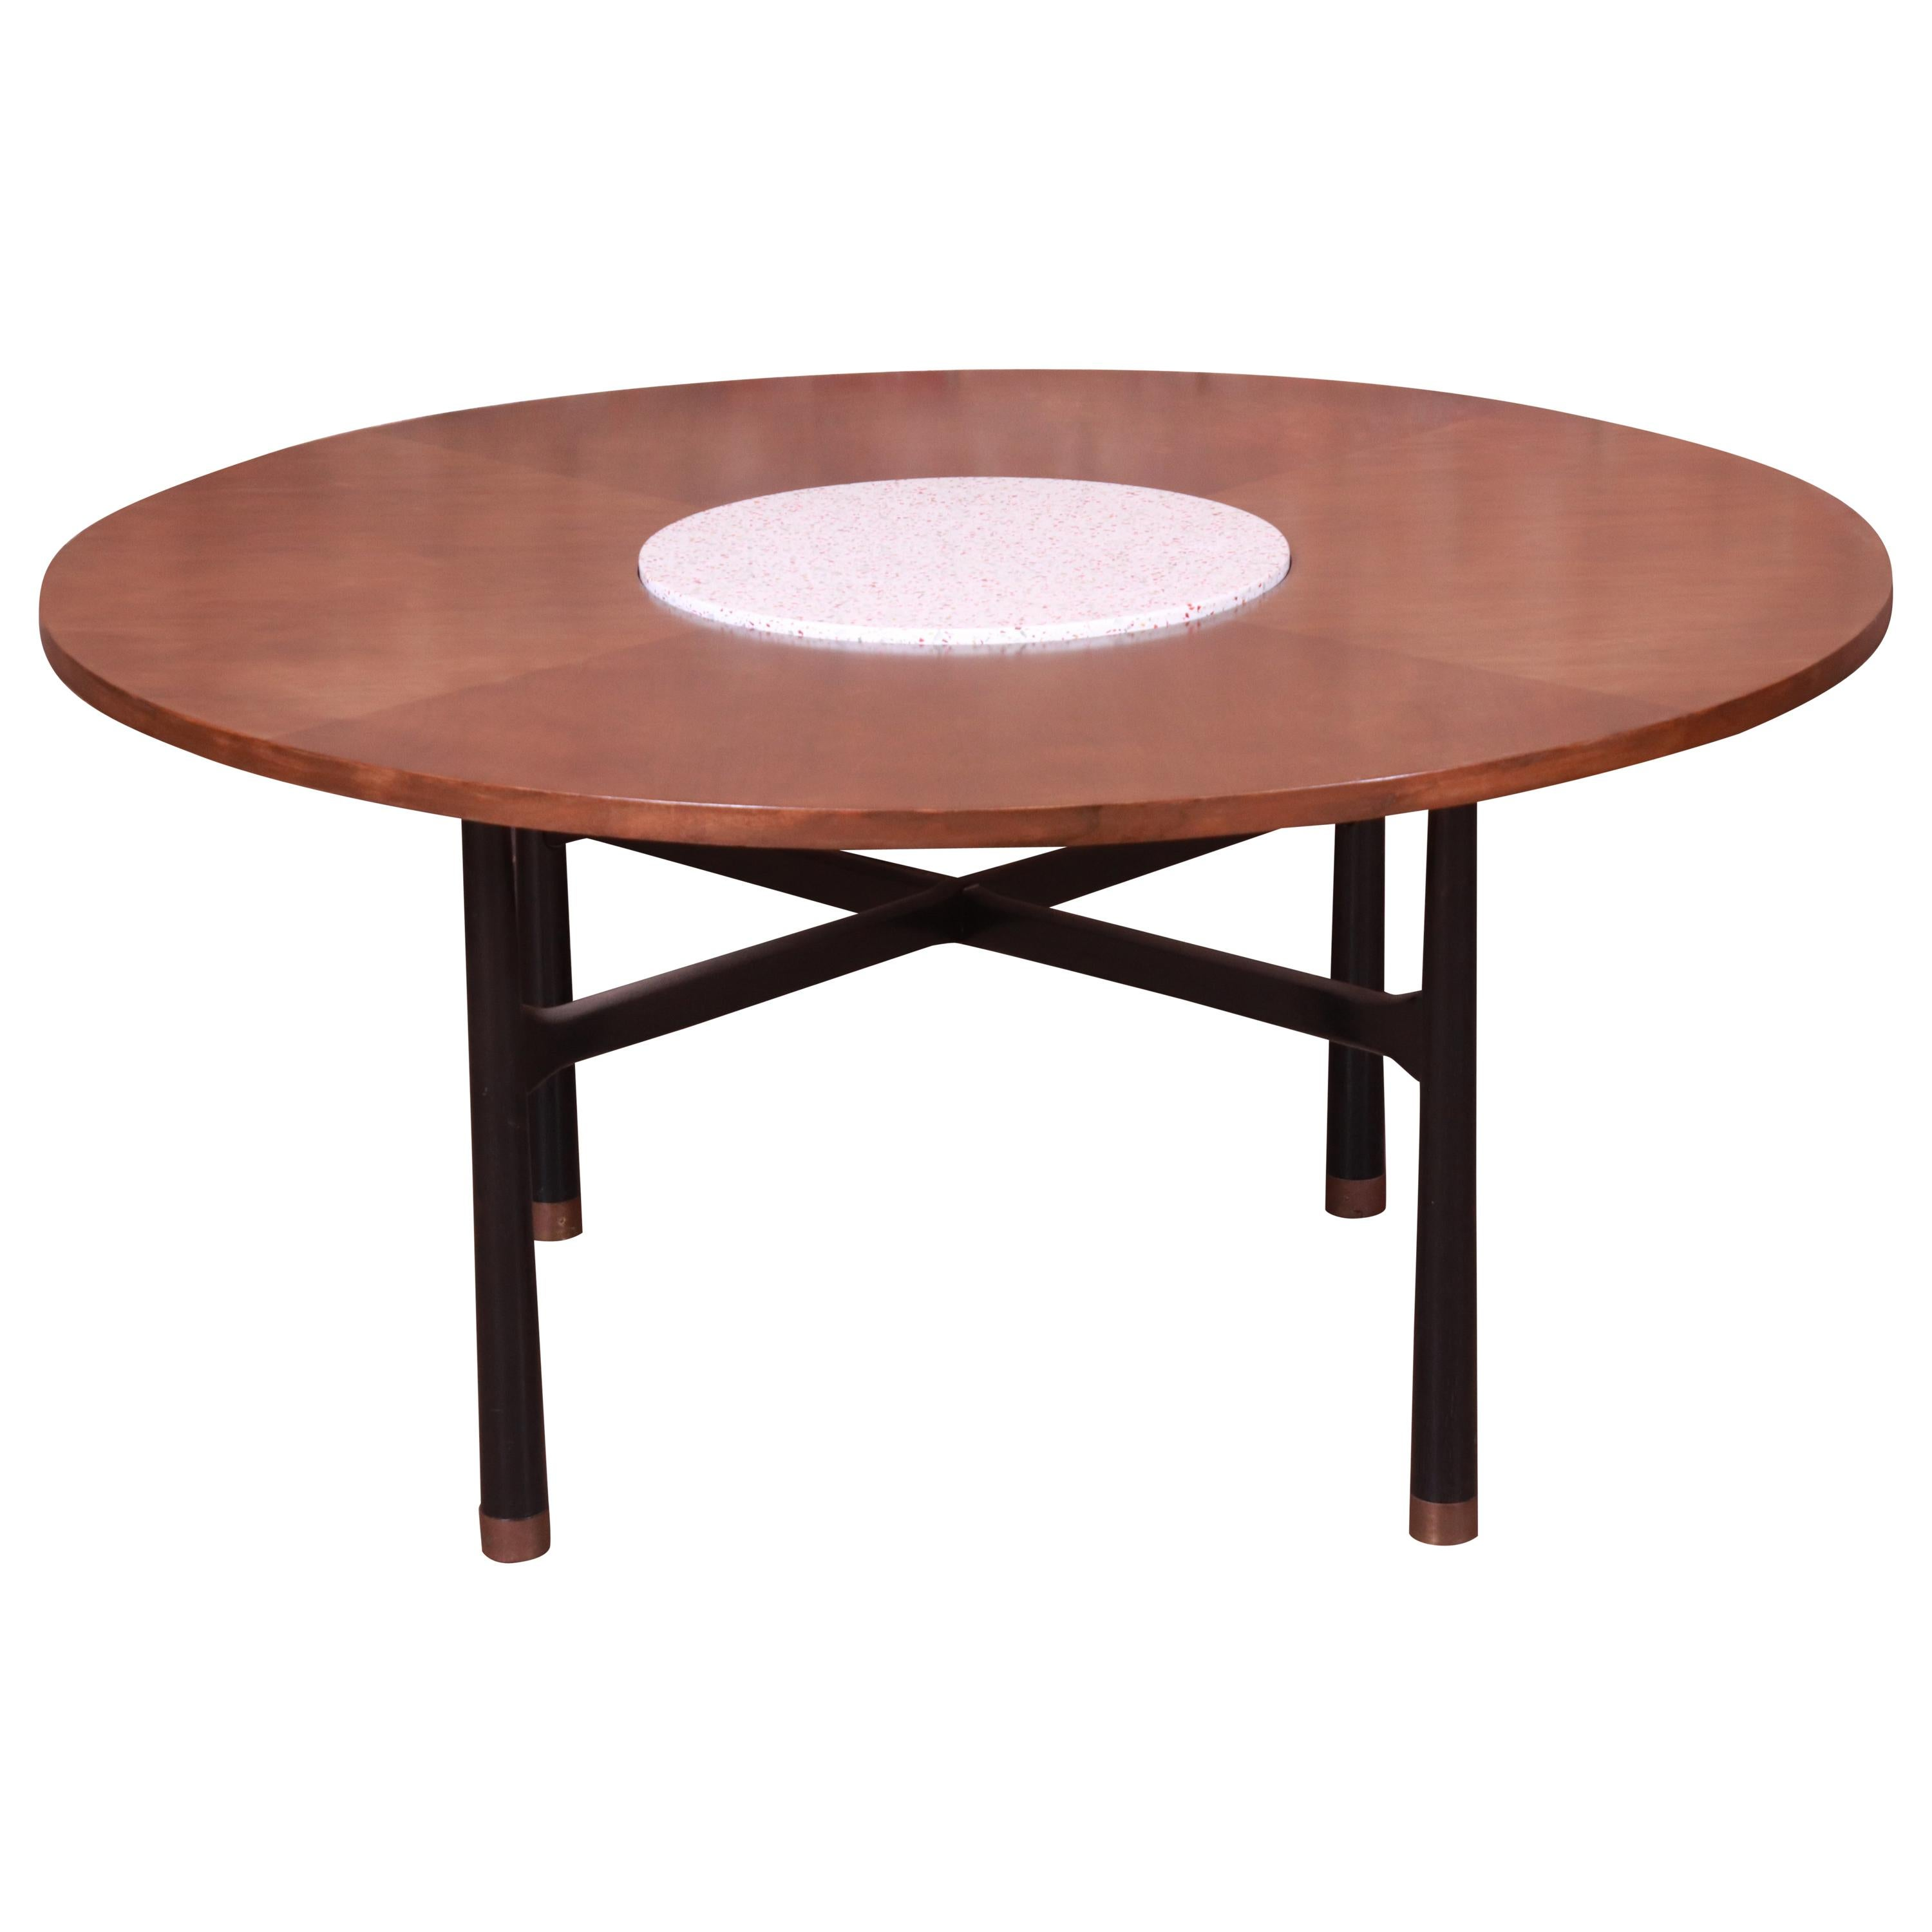 Harvey Probber Walnut and Terrazzo Marble Game or Center Table, 1950s